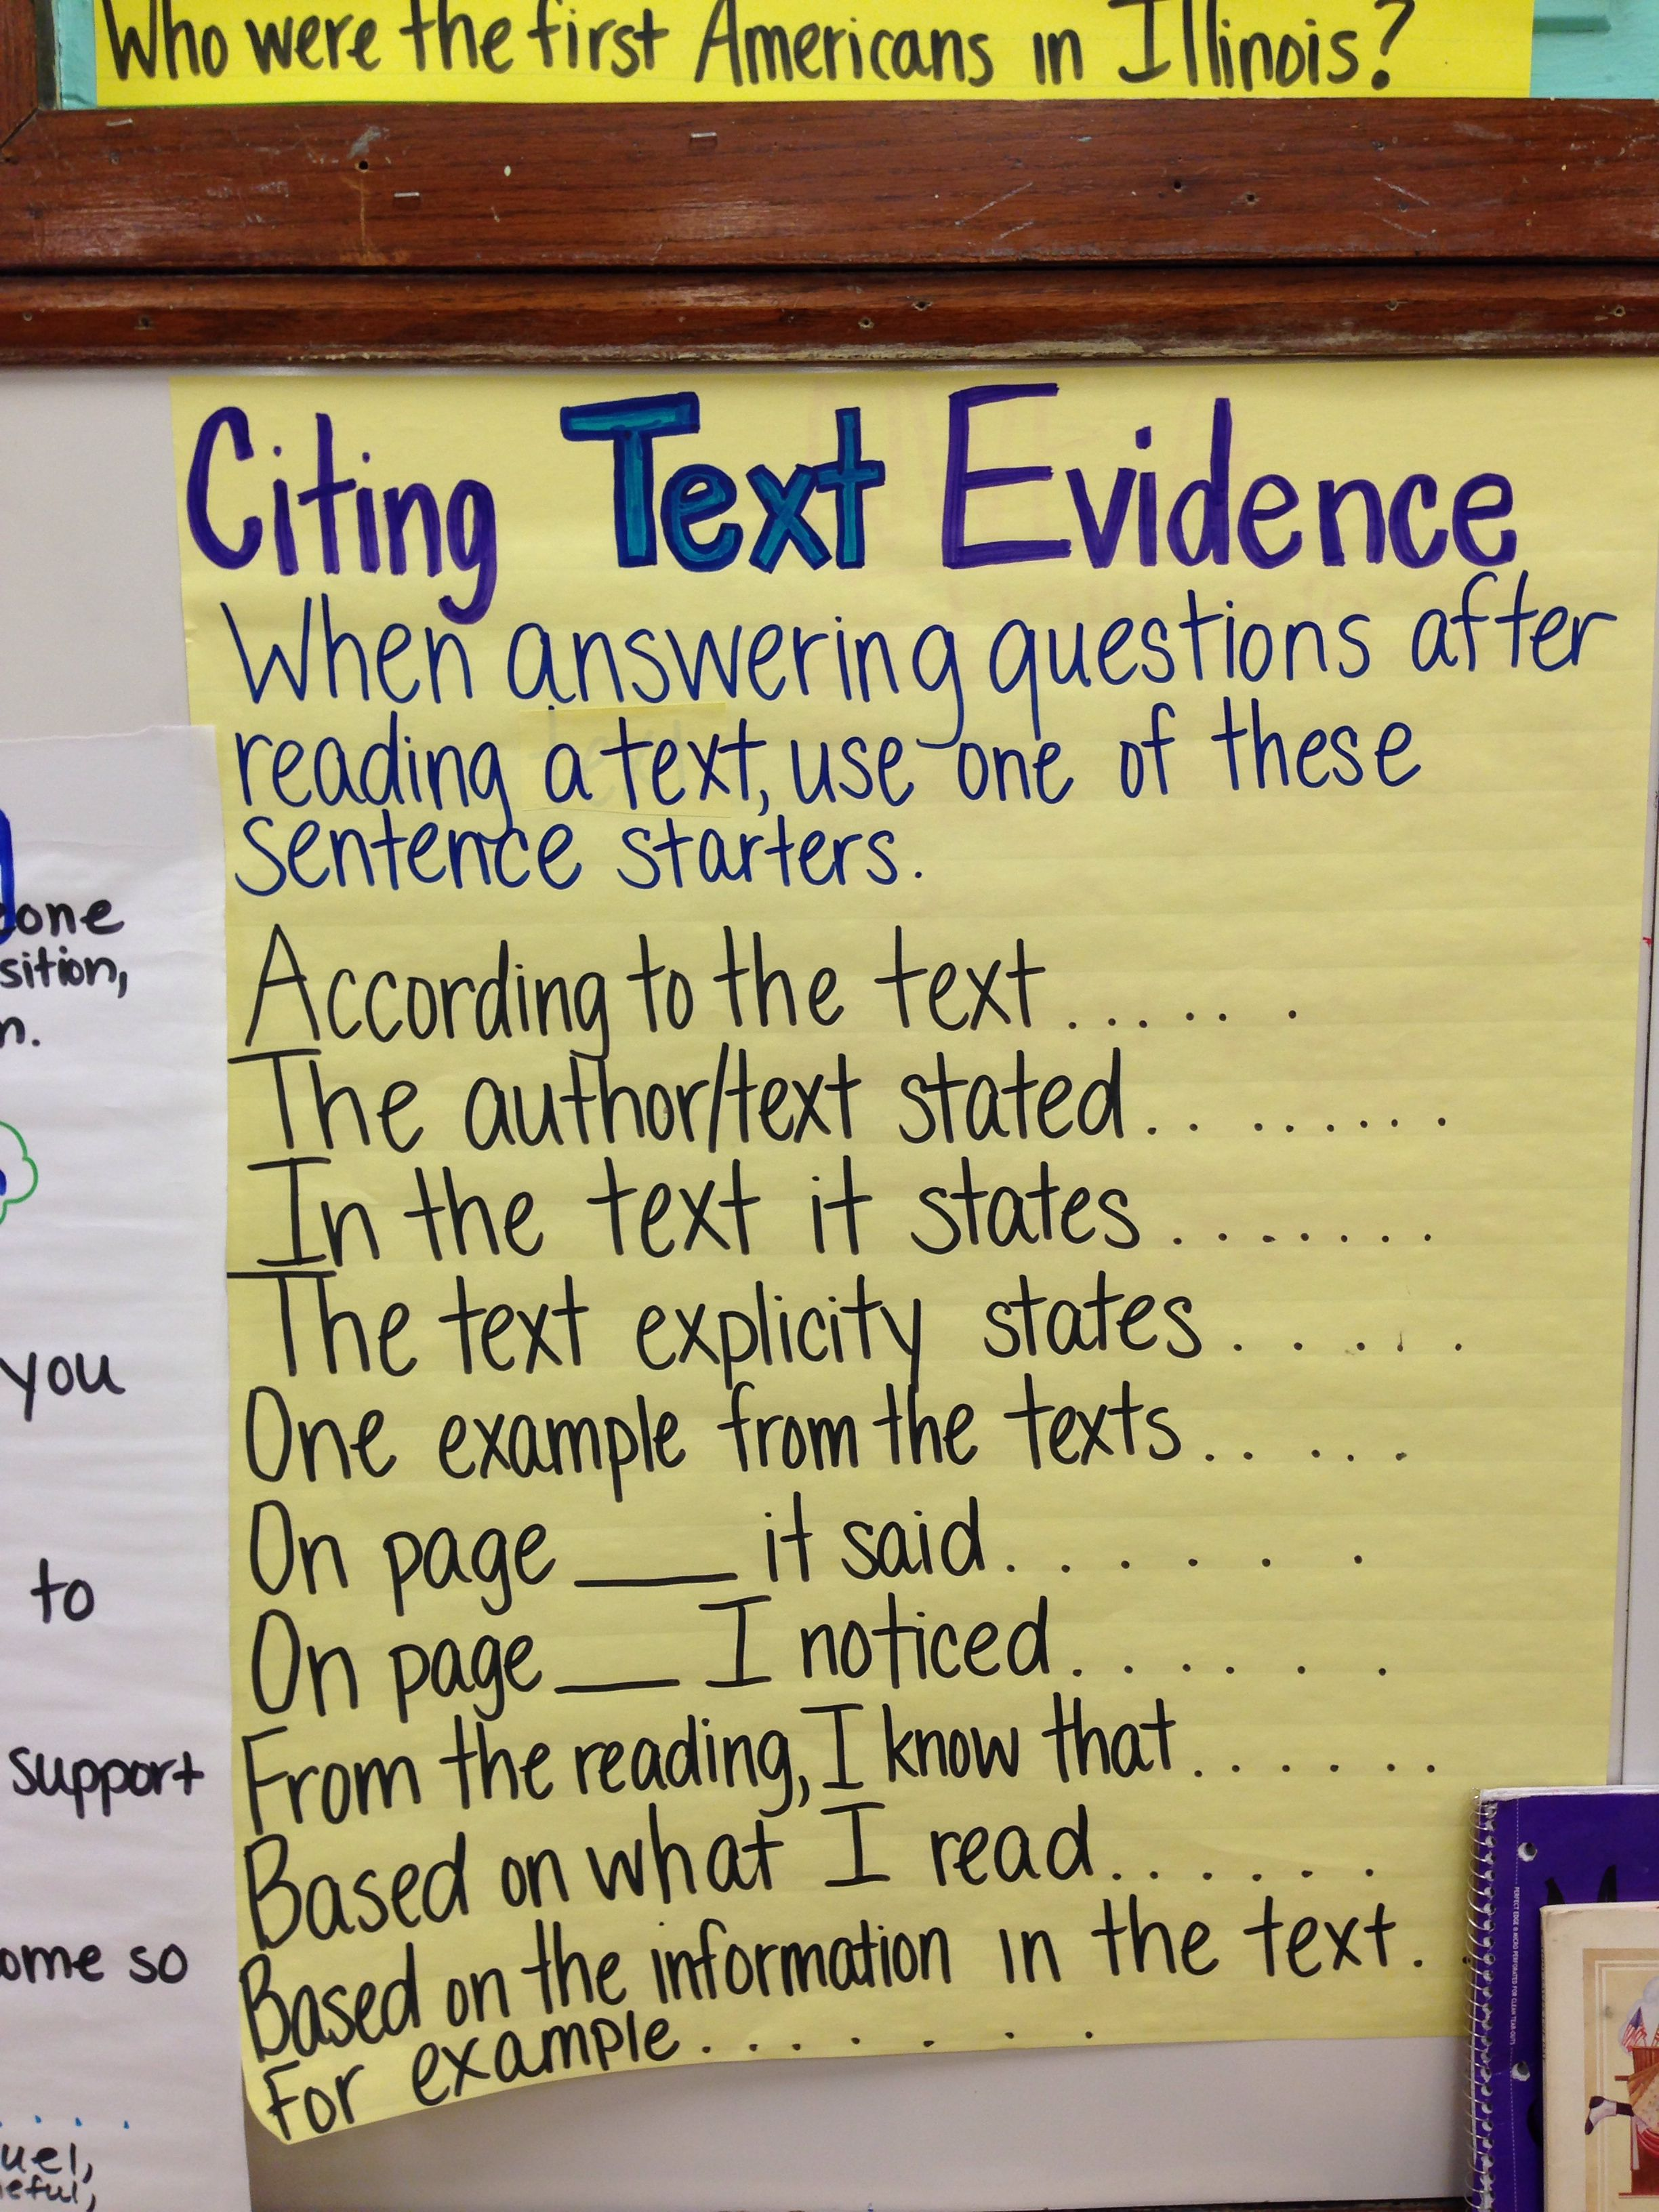 Citing text evidence chart. Will give a copy to past in my ELL and Special Ed students' interactive science journal.